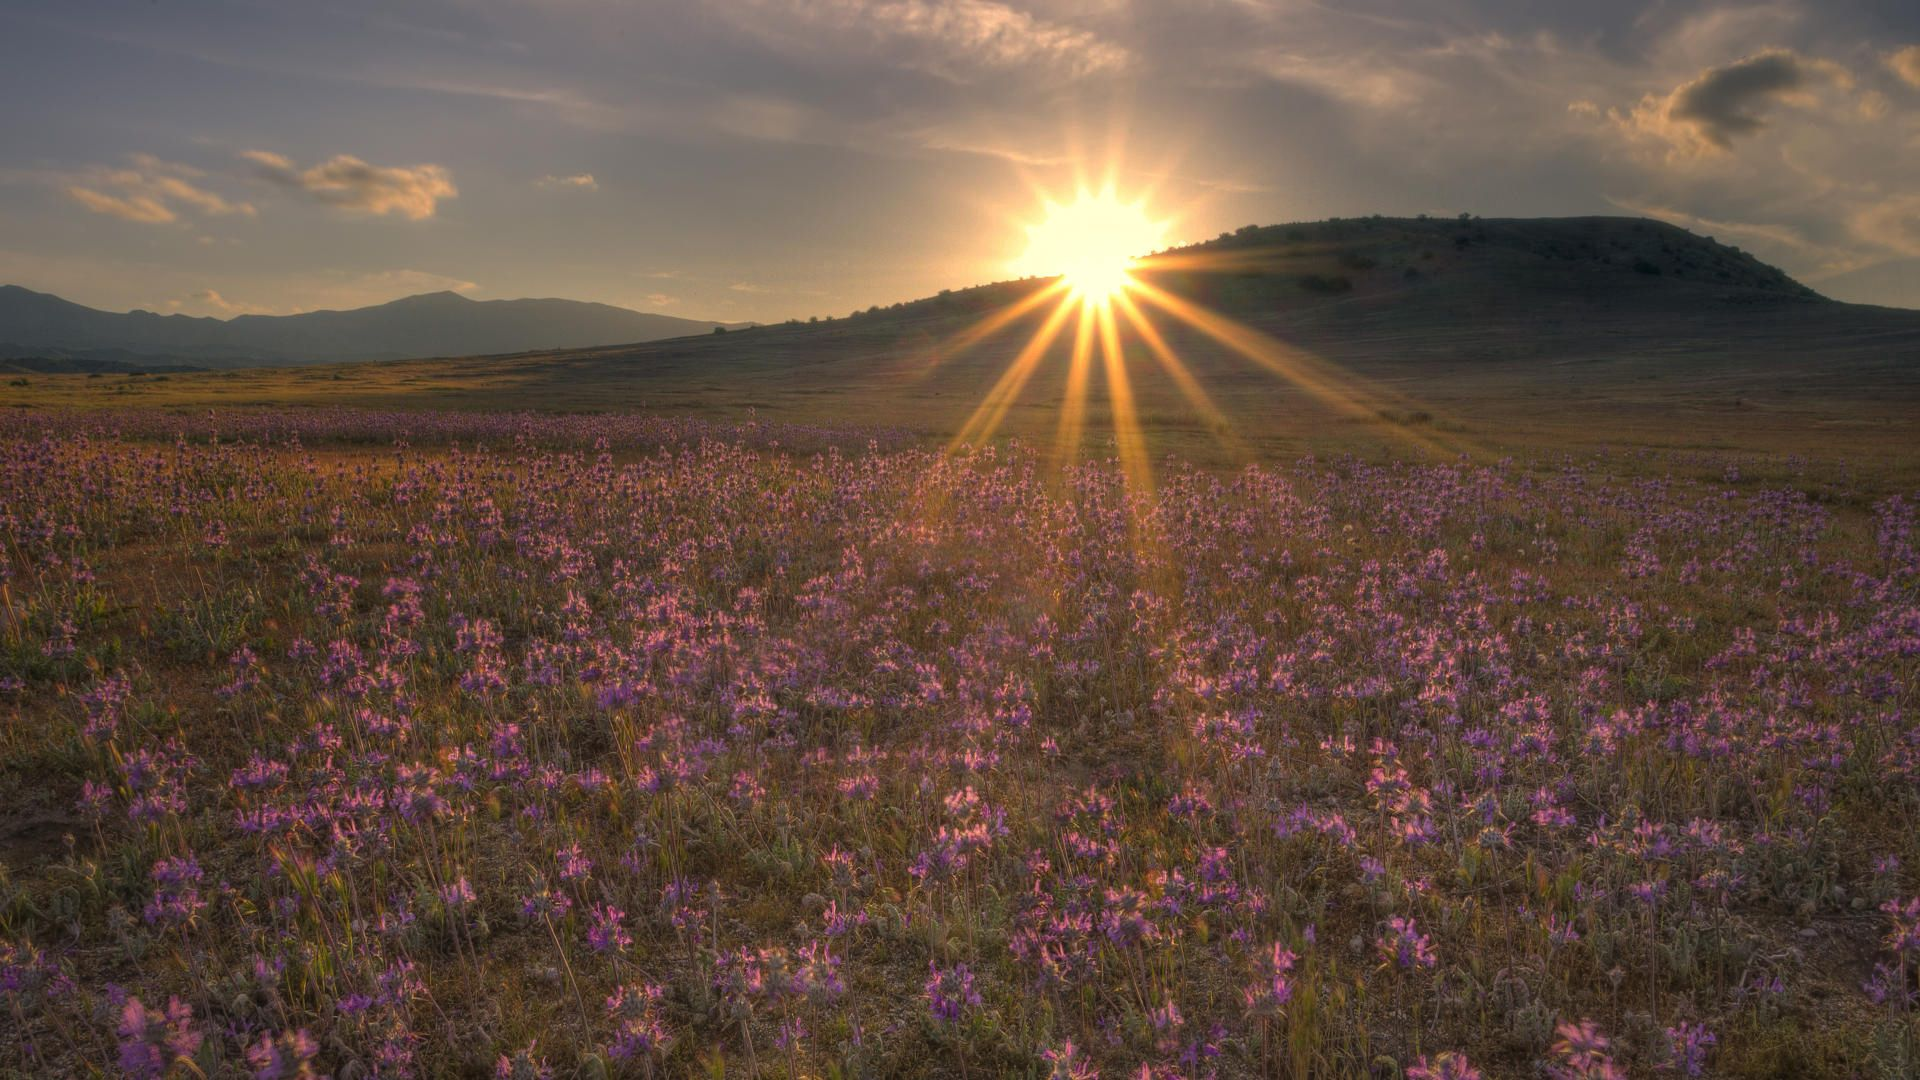 121632 Screensavers and Wallpapers Beams for phone. Download Nature, Flowers, Sunset, Sun, Shine, Light, Beams, Rays, Field, Evening pictures for free